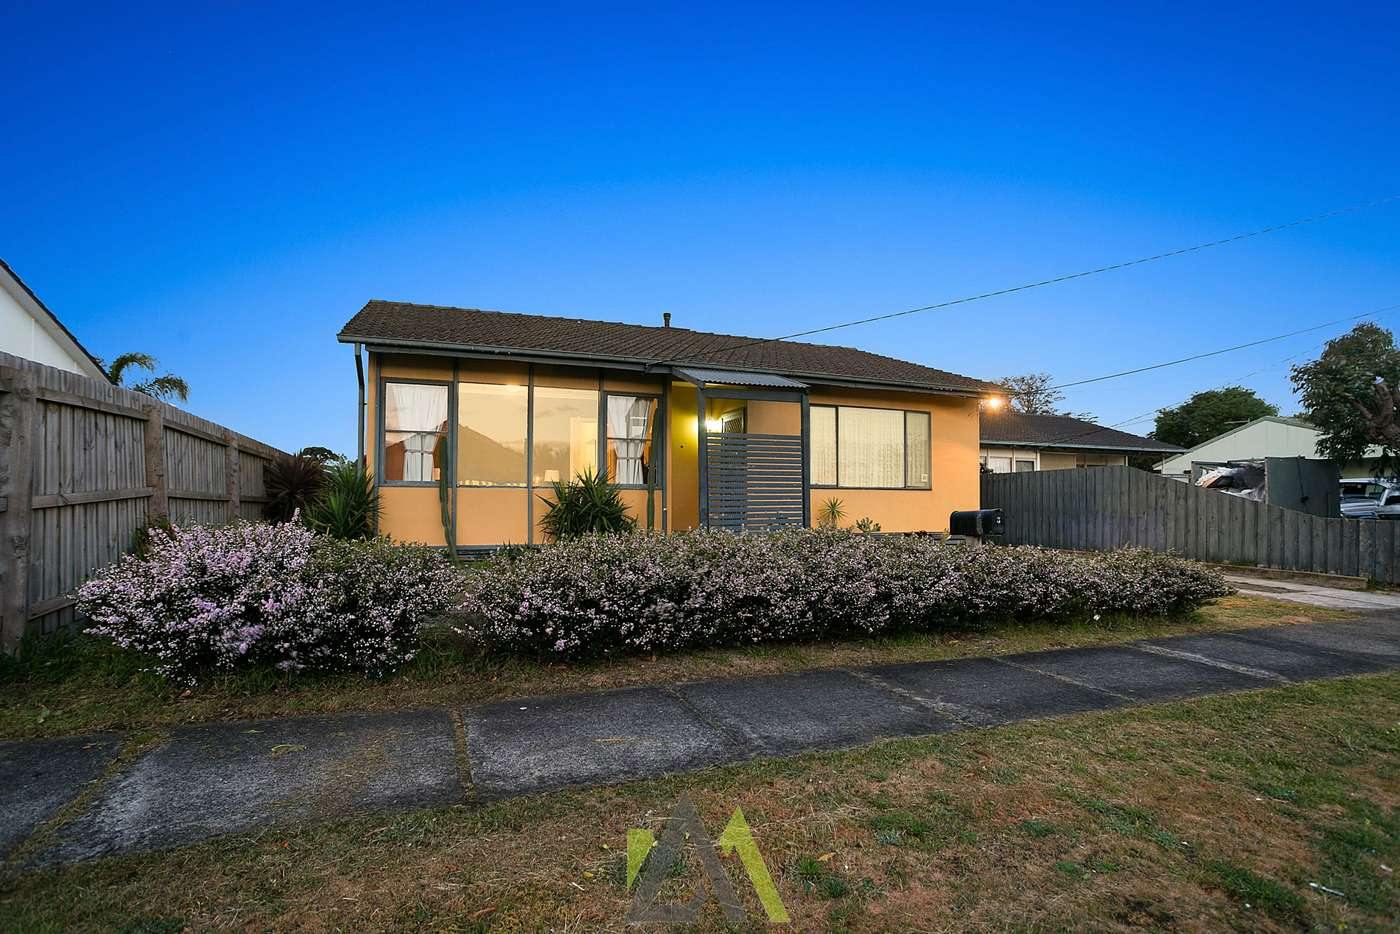 Main view of Homely house listing, 3 Burdett Street, Frankston North VIC 3200